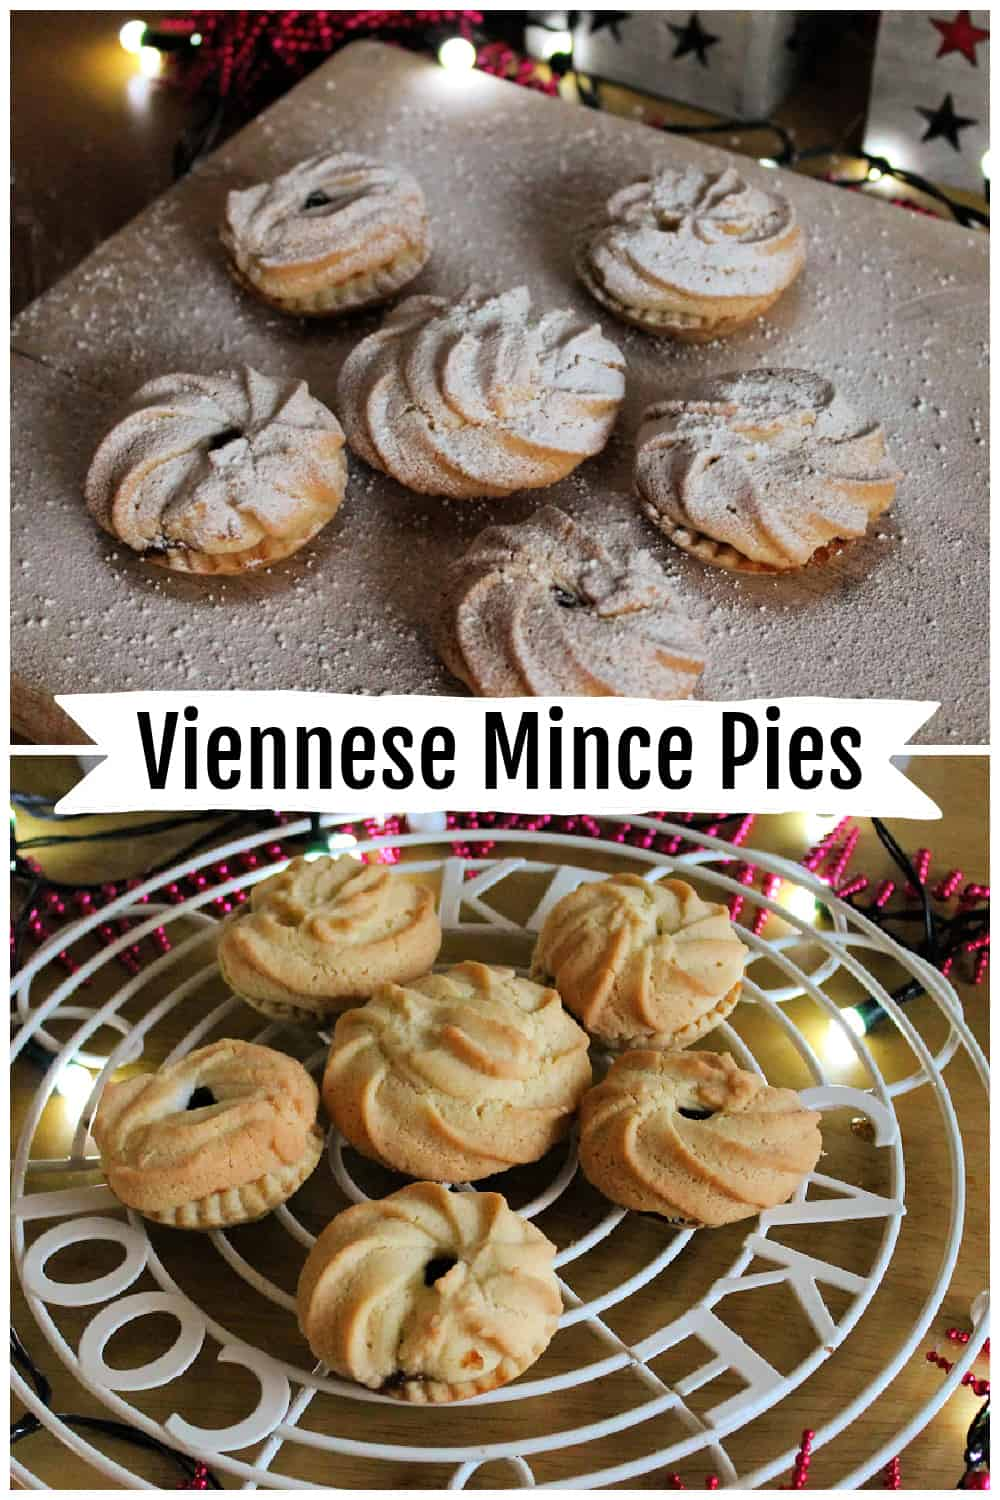 Collage of two images of Viennese mince pies, with text overlay.